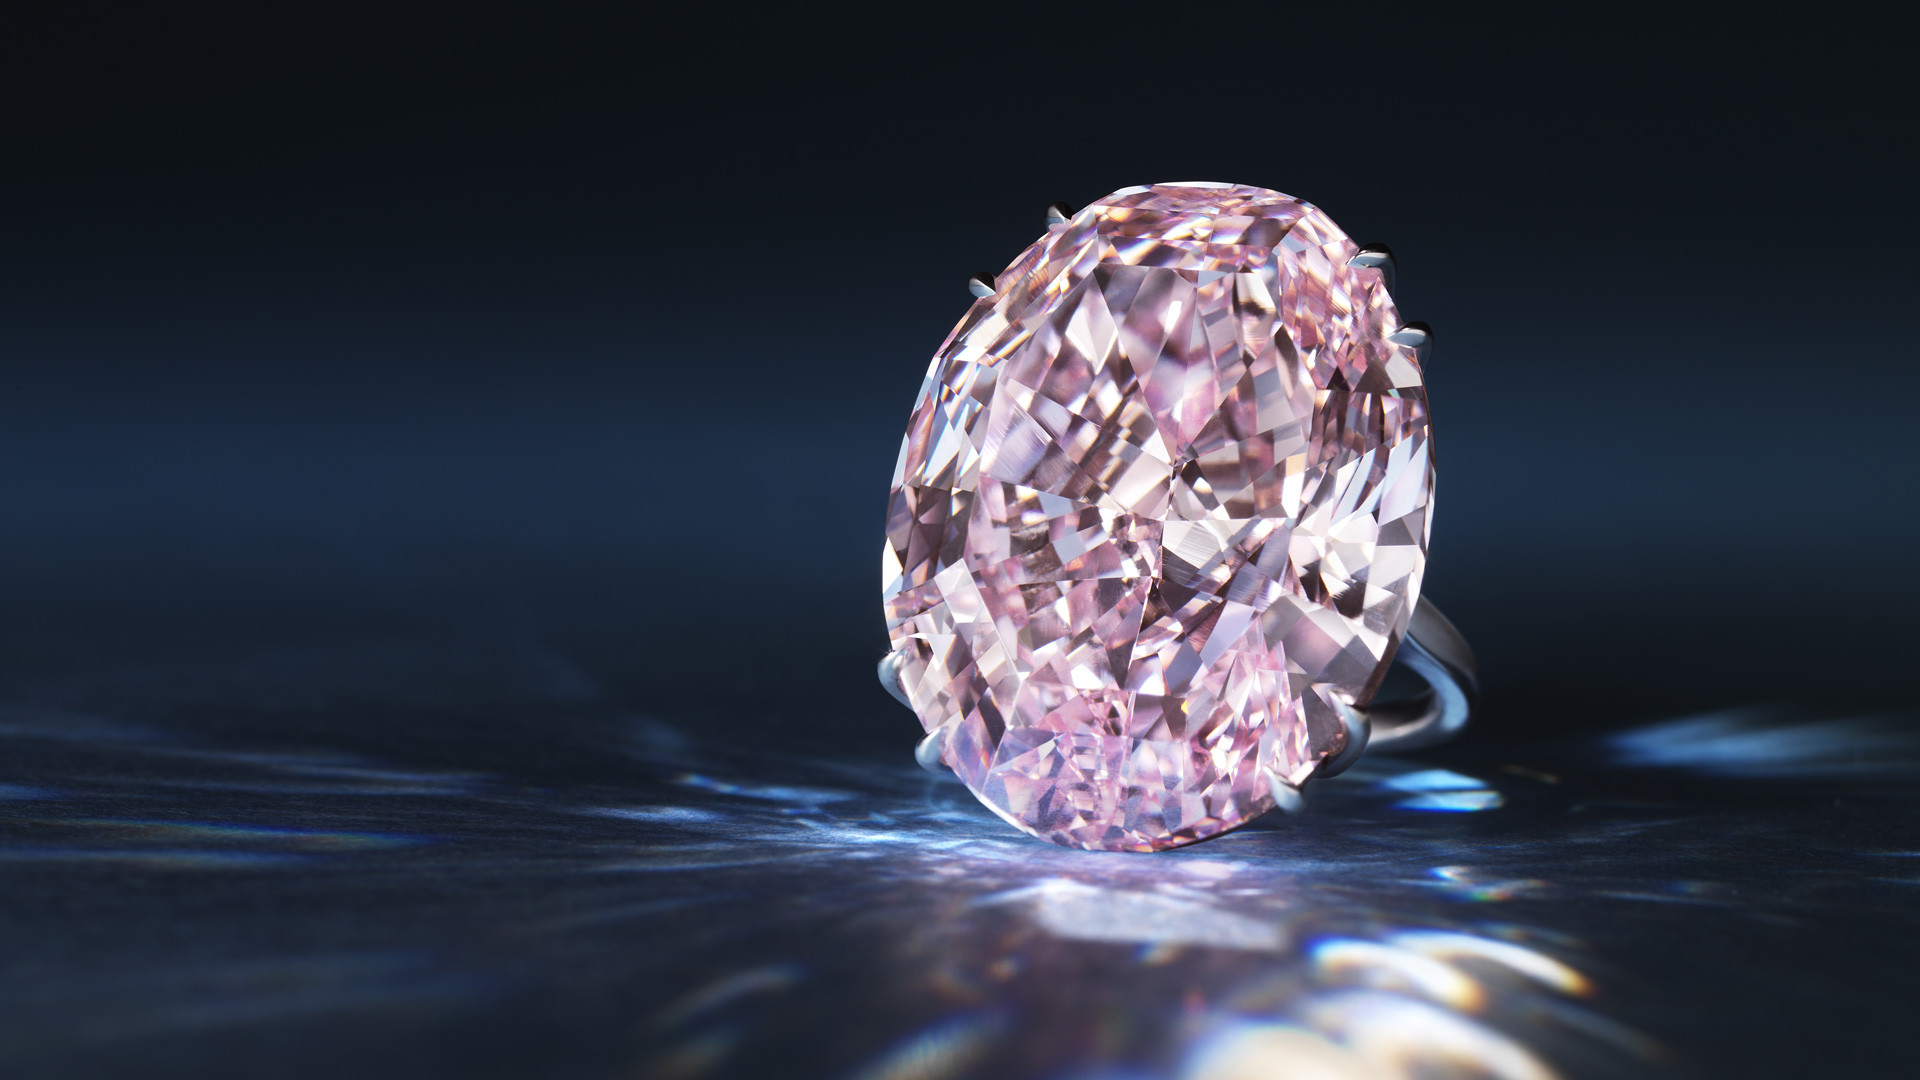 Diamond Background Images 54 Images